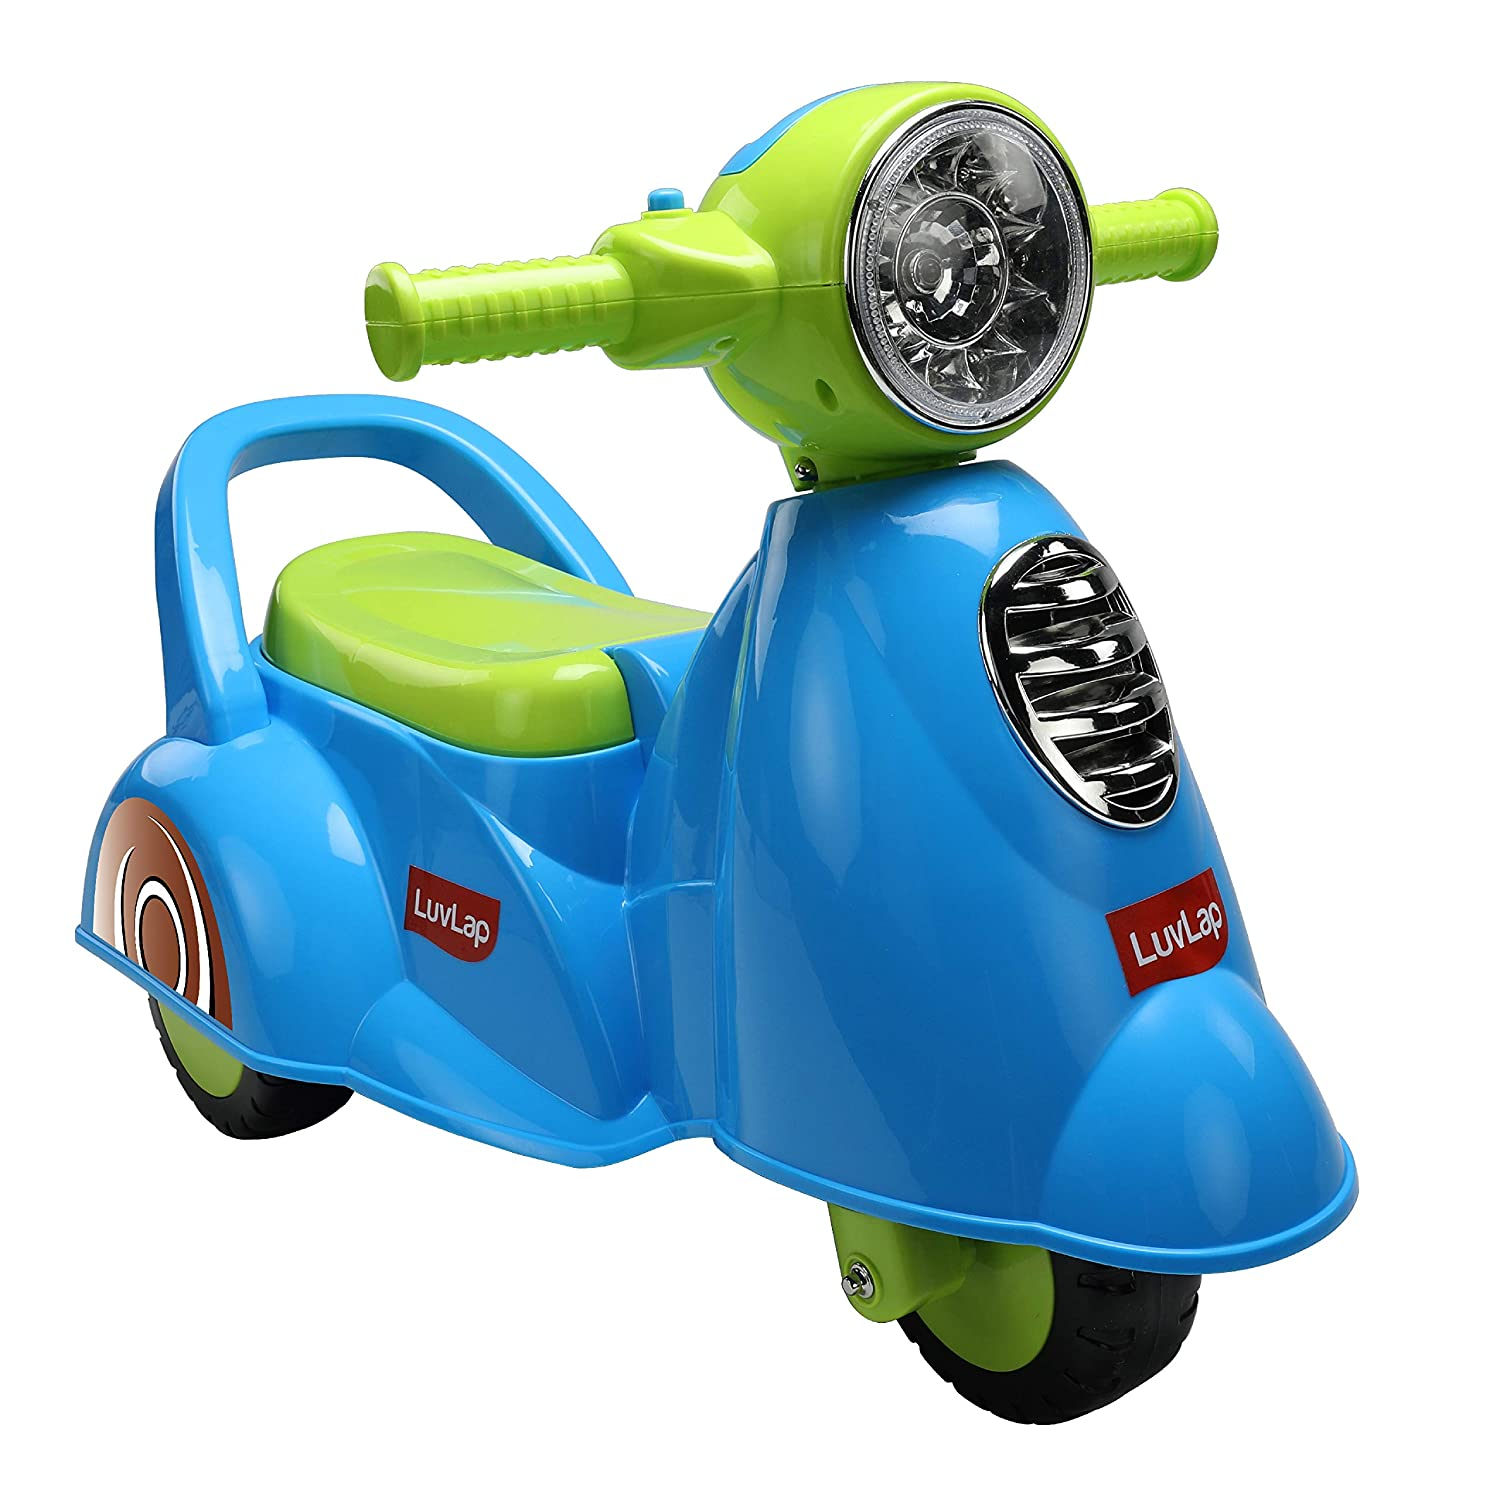 Luvlap Wheelie Scooter Ride On for Kids for ₹1,495